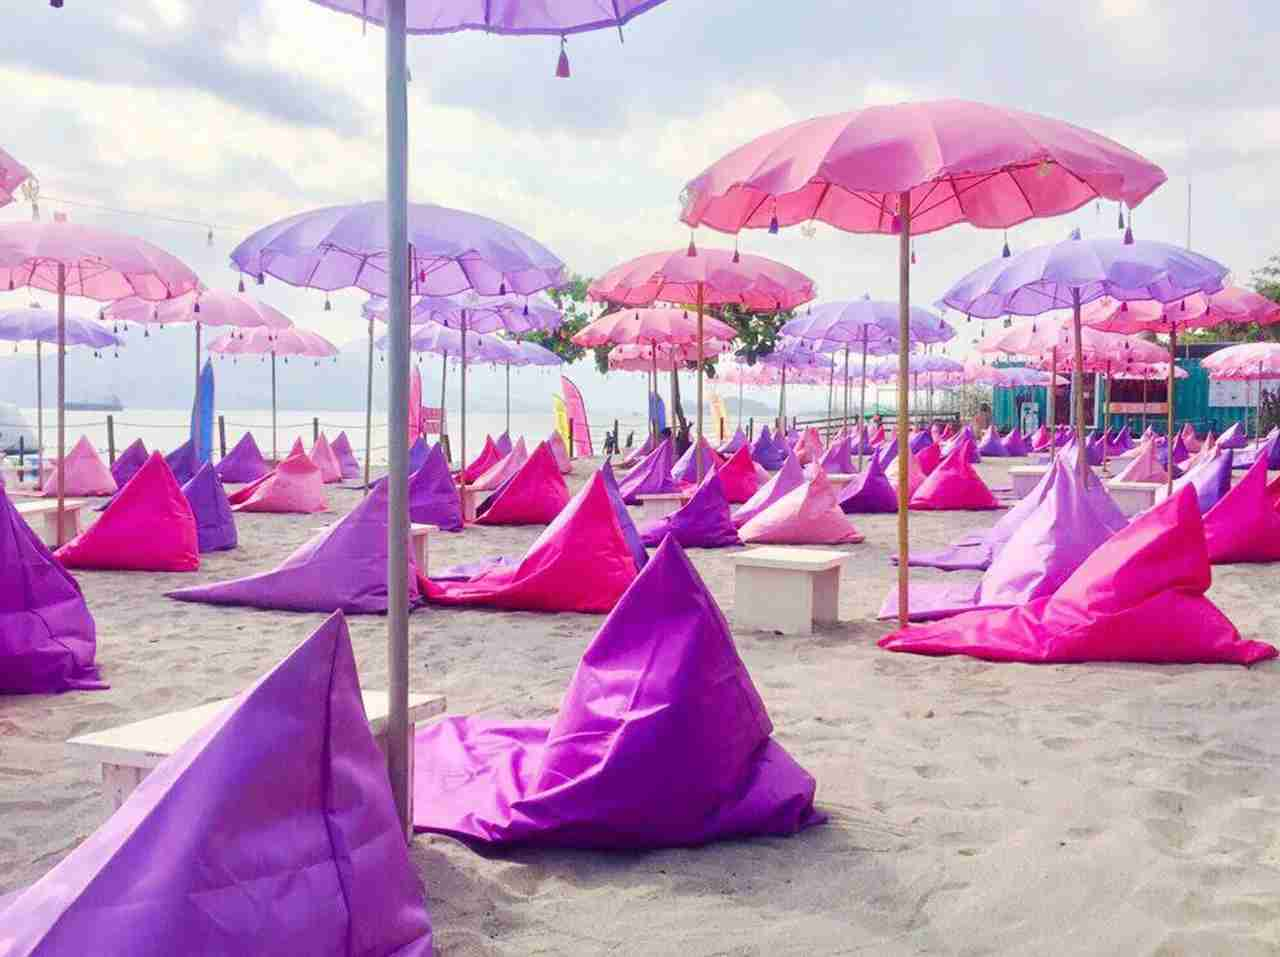 Bali Beach lounge. (Photo courtesy of The Inflatable Island)